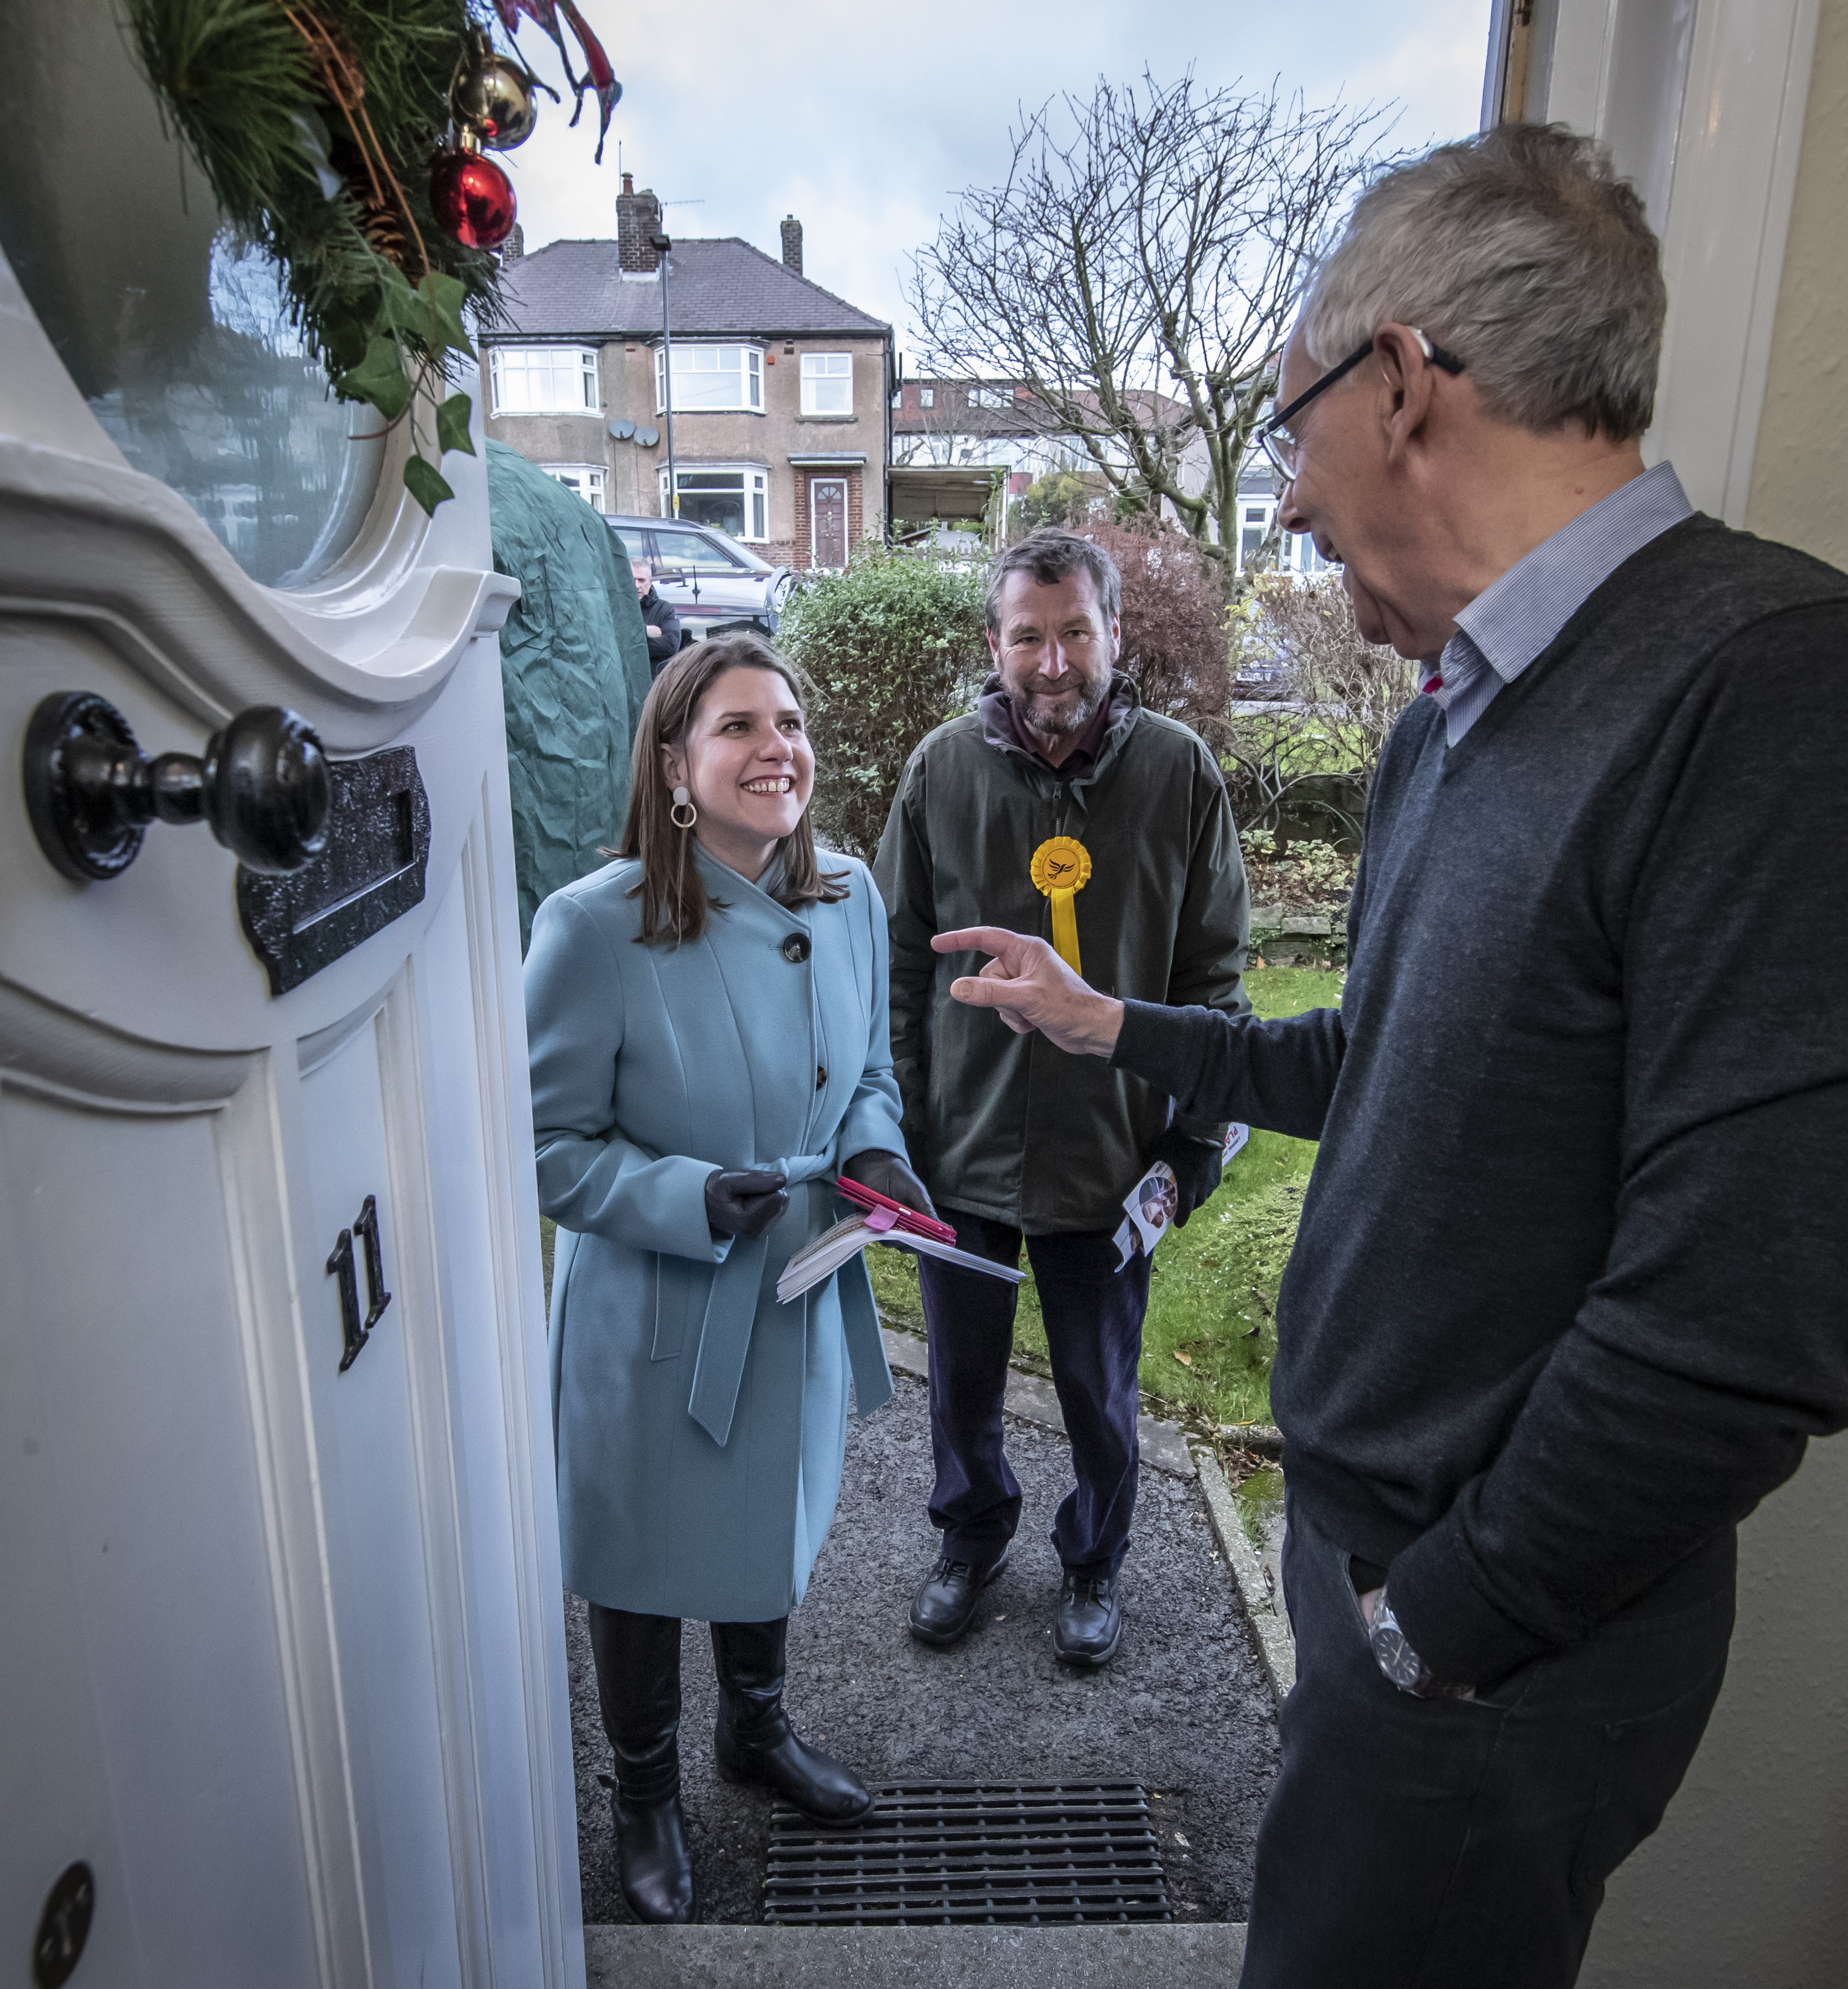 Liberal Democrat Leader Jo Swinson canvassing door to door with Liberal Democrat parliamentary candidate for Sheffield Central Colin Ross (centre) during a visit to Sheffield, while on the General Election campaign trail.